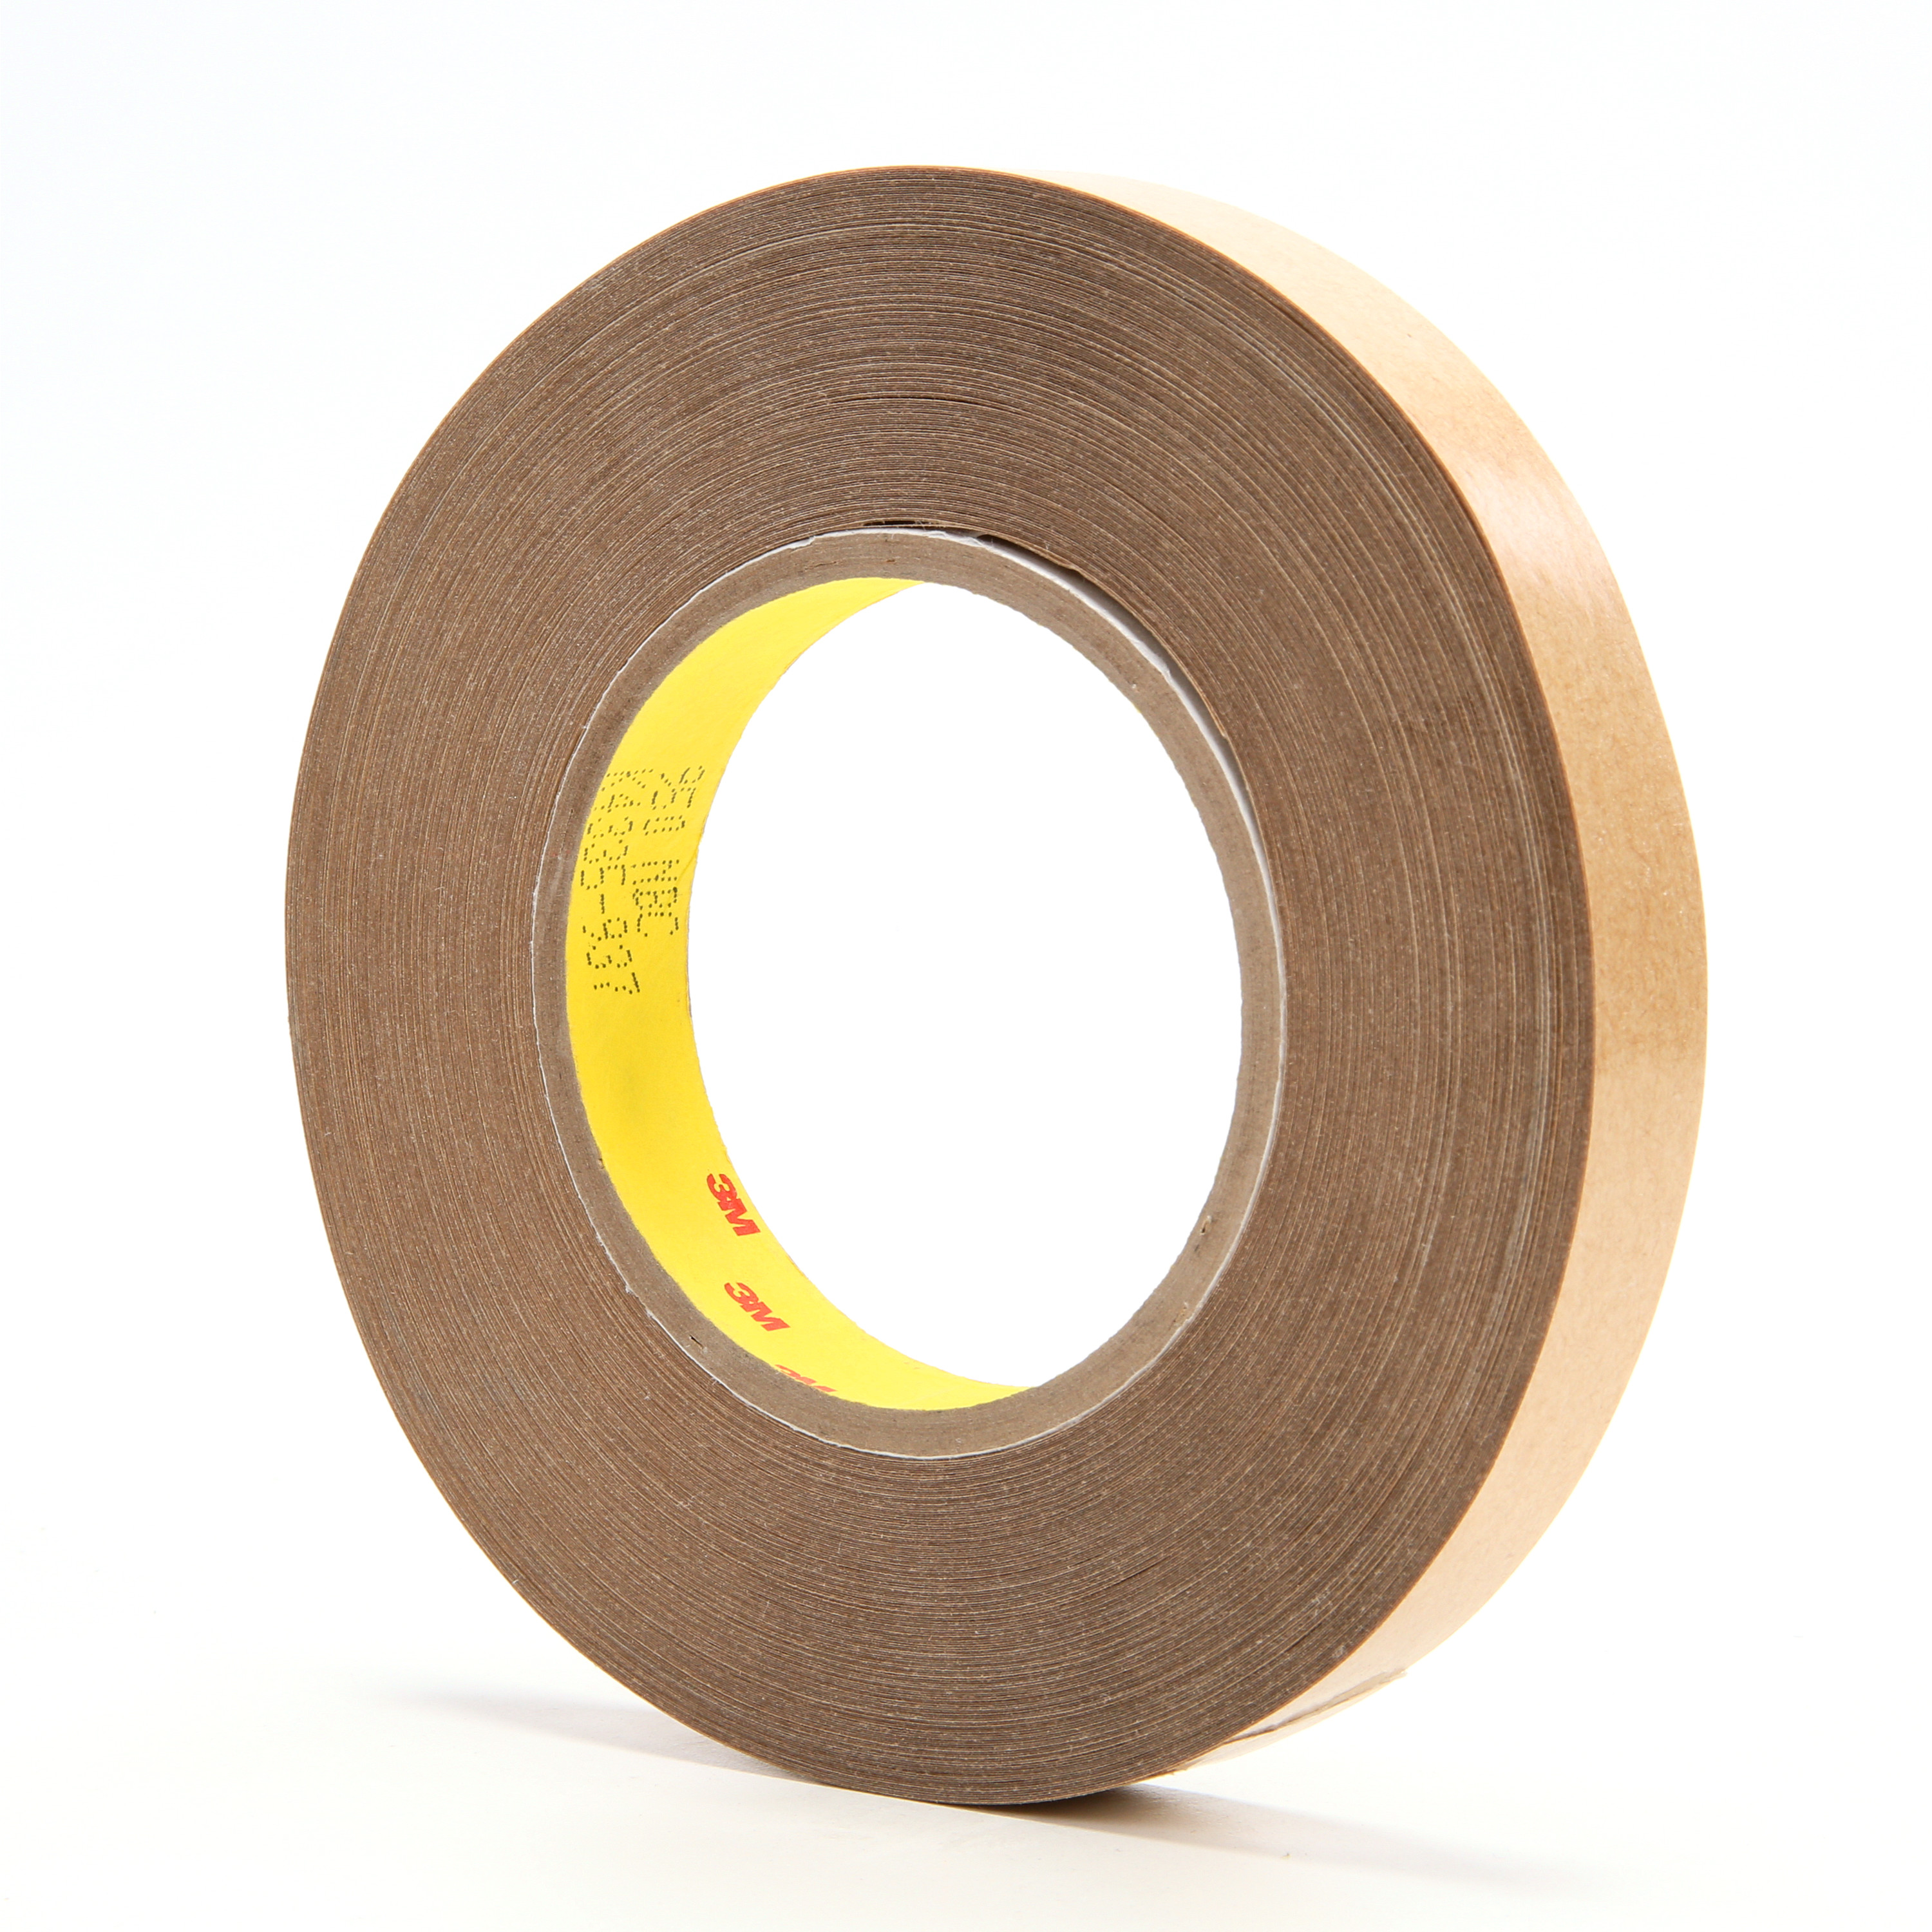 3M™ Adhesive Transfer Tape 950, Clear, 3/4 in x 60 yd, 5 mil, 48 rolls per case